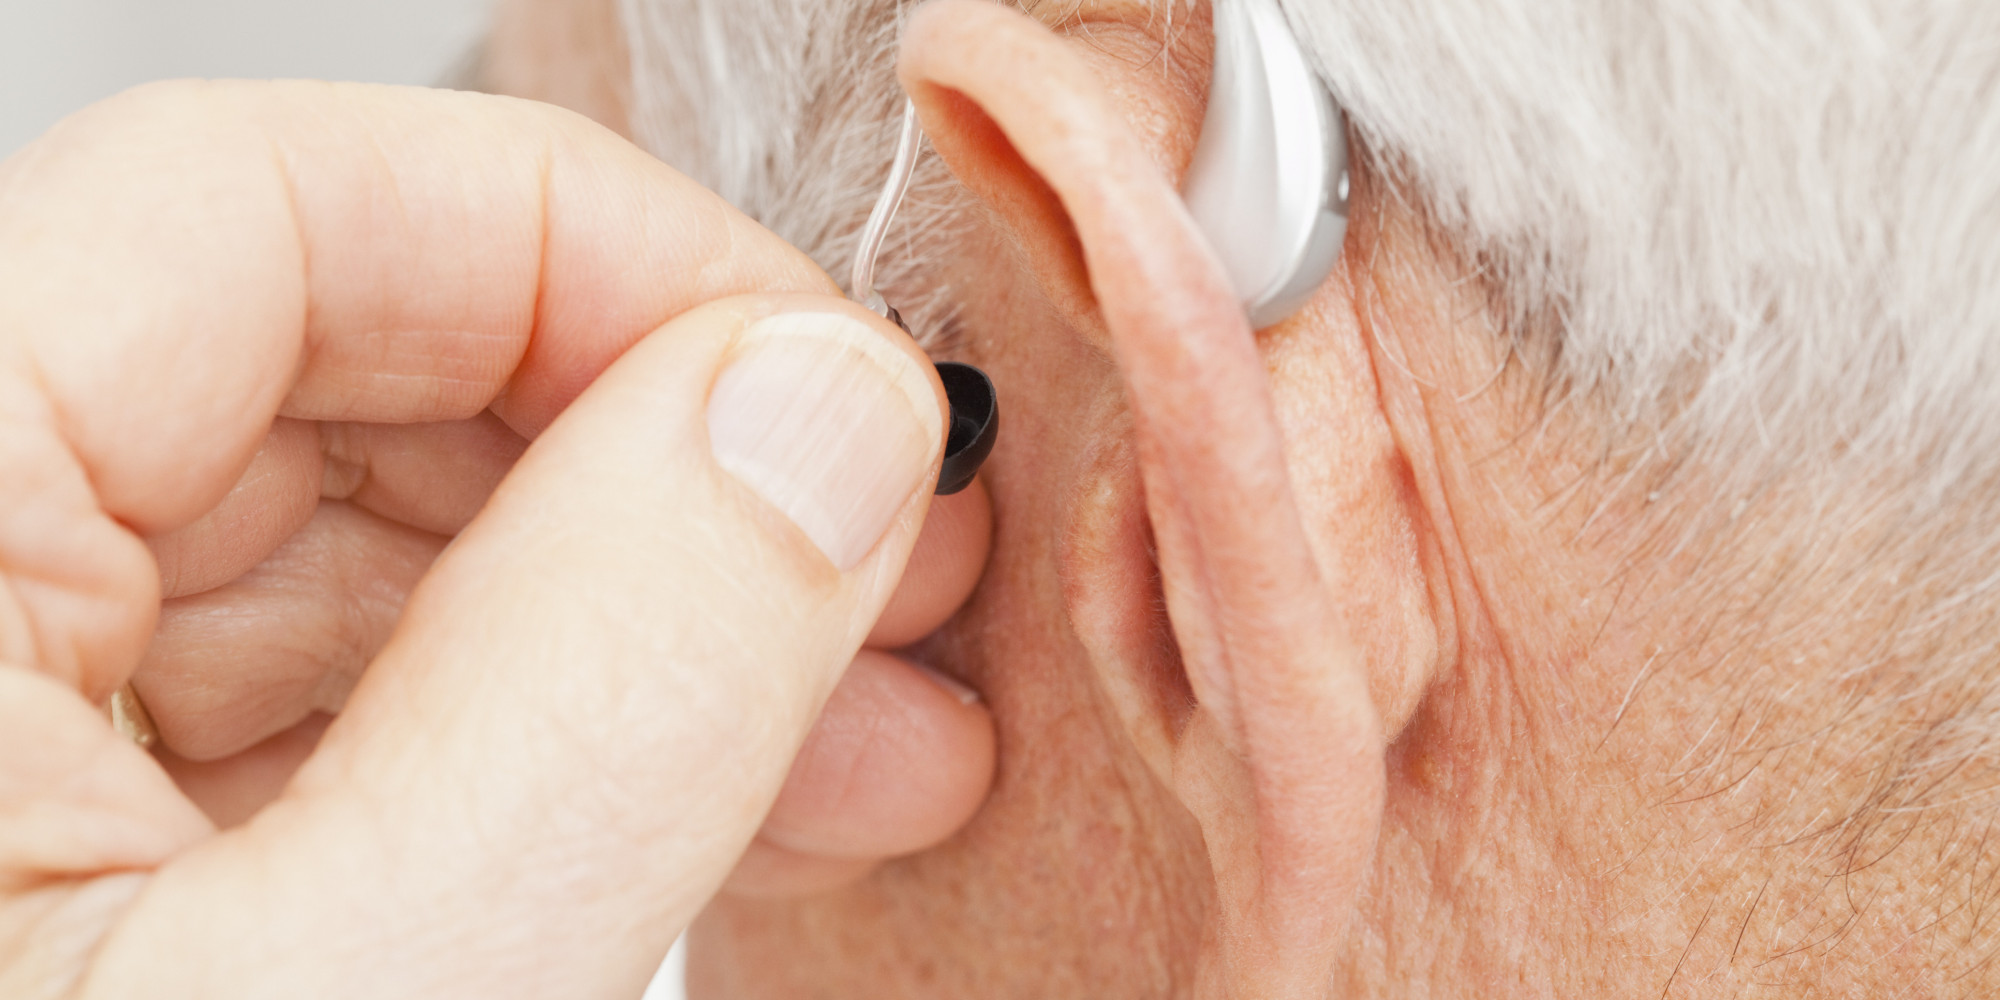 Dating someone with hearing aids